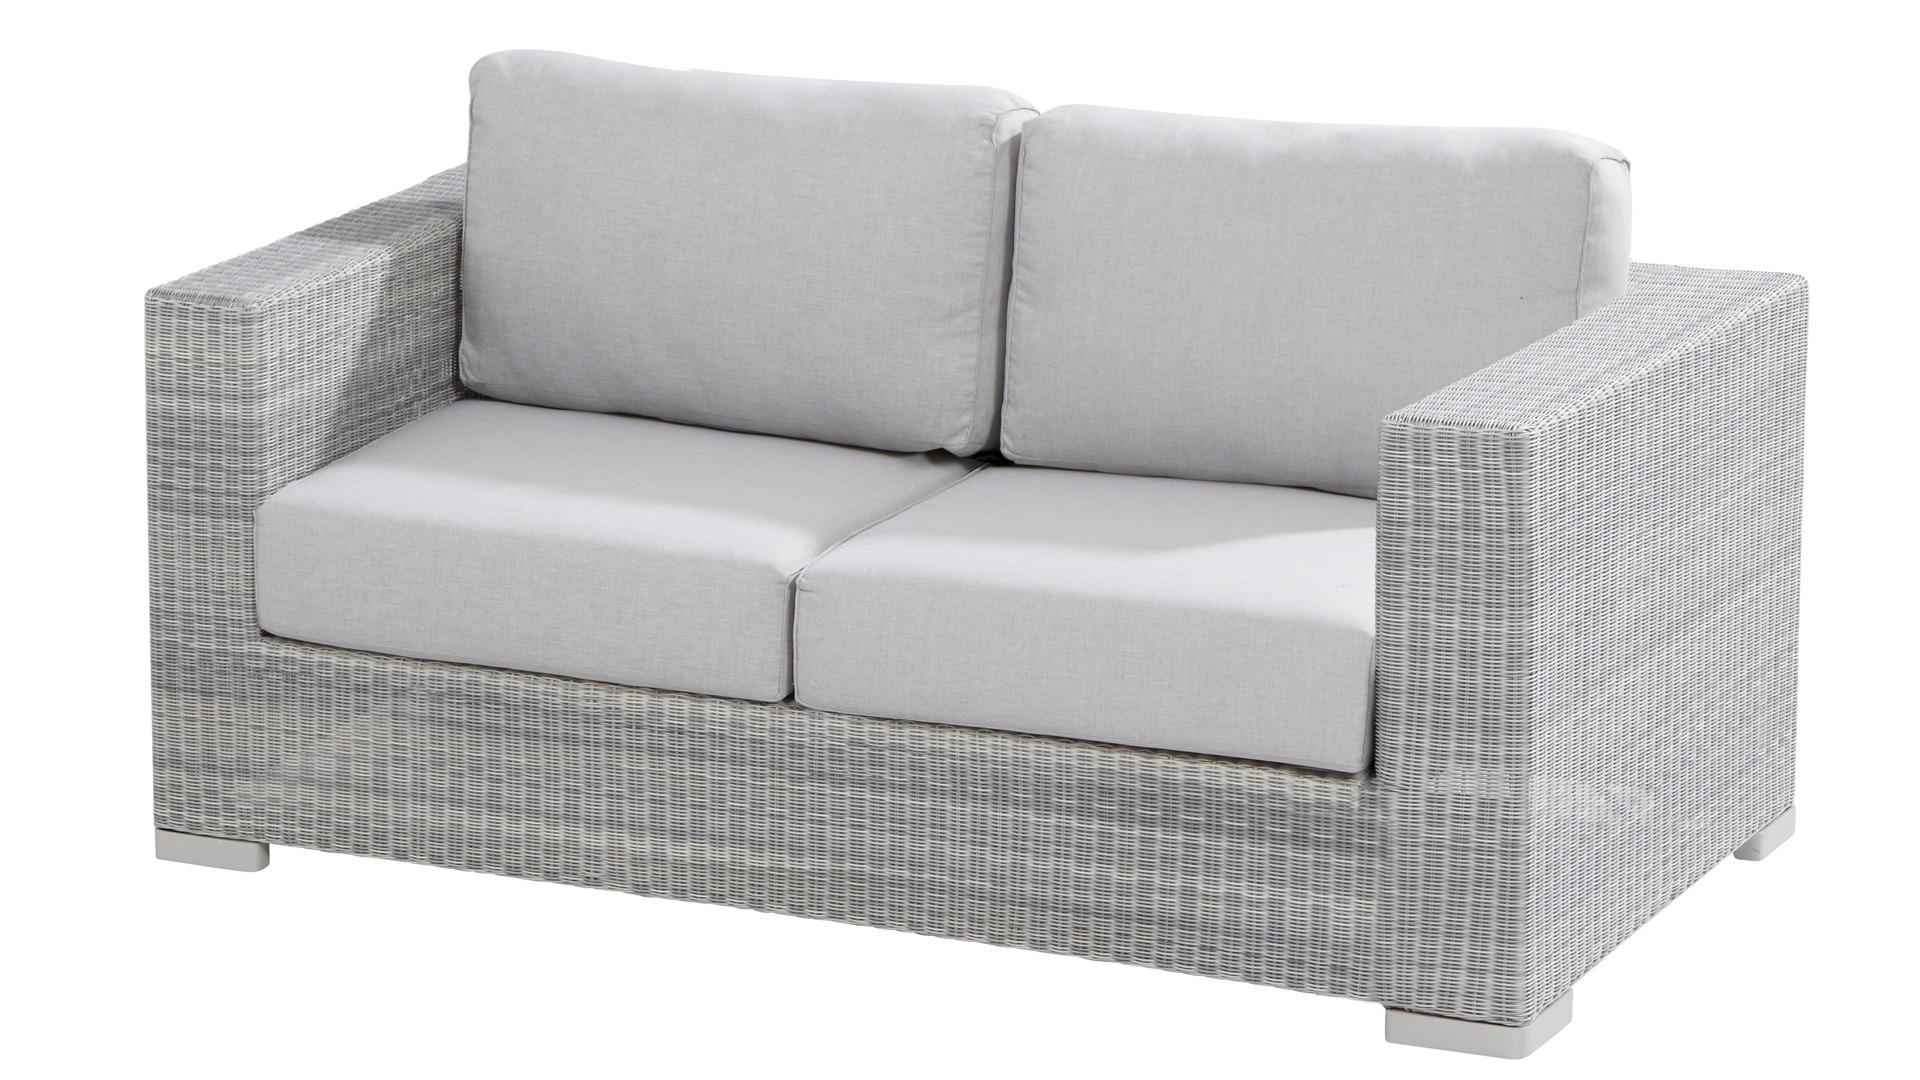 Outlet Loungebank 4 Seasons Outdoor Lucca Loungegruppe Polyloom Ice